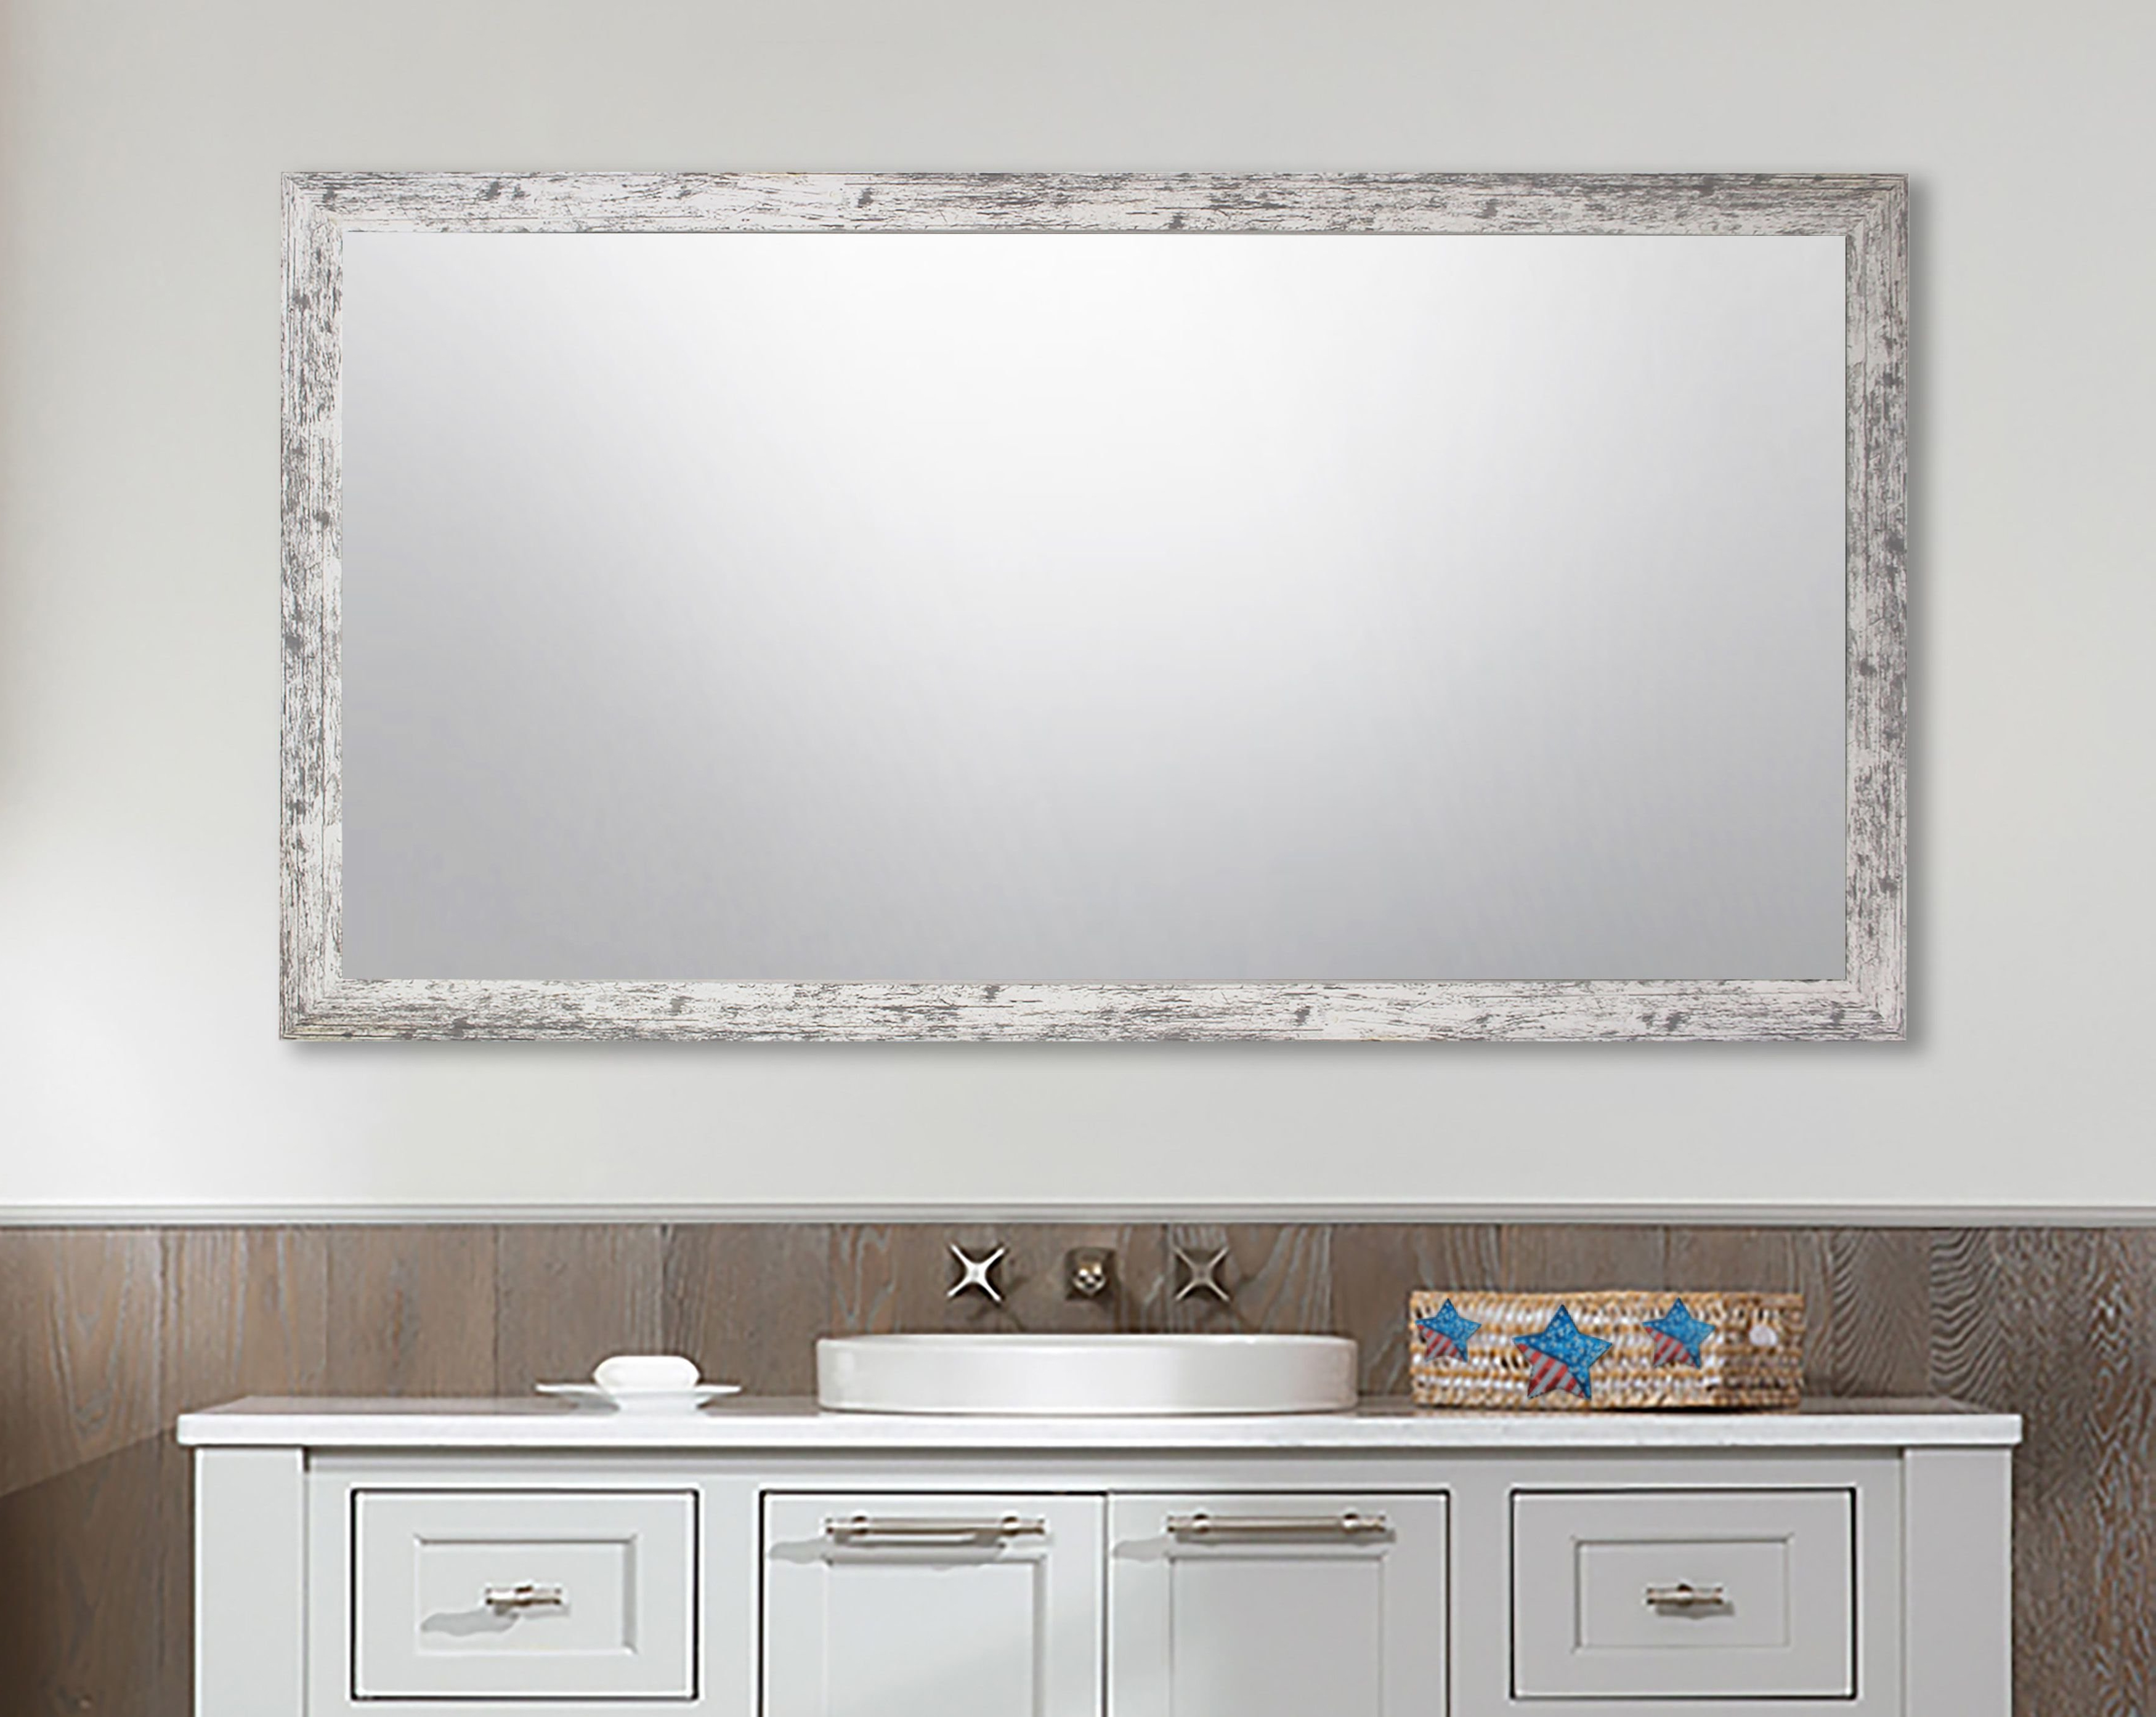 Most Recent Landover Rustic Distressed Bathroom/vanity Mirrors Inside Distressed Bathroom Vanity Mirror – Home Decor Photos Gallery (View 3 of 20)